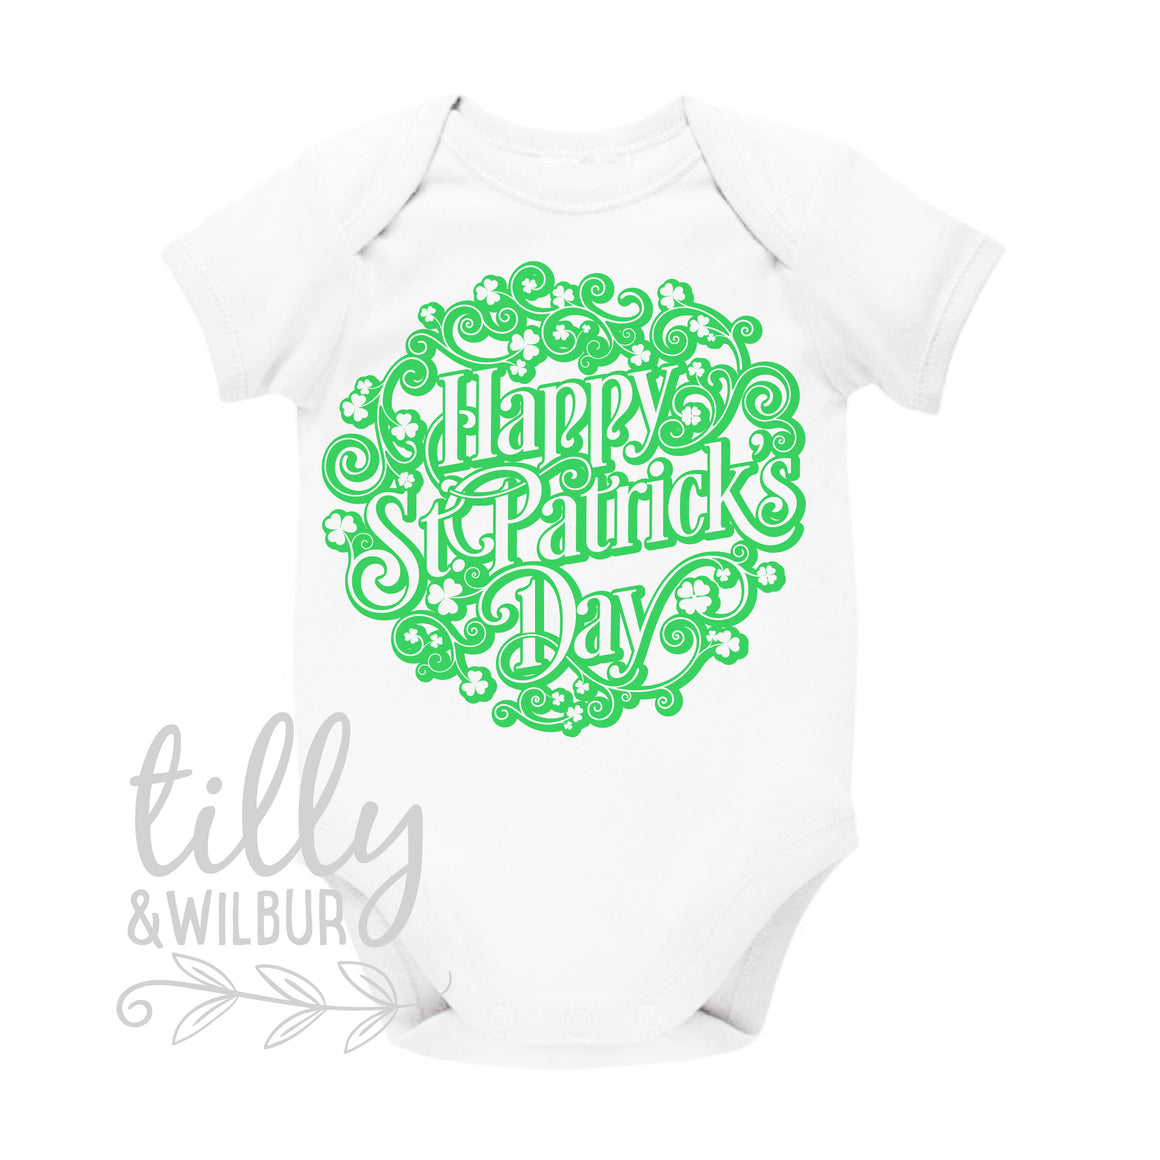 Happy St Patrick''s Day Baby Bodysuit, Happy St Paddy's Day Newborn Outfit, Celebrate All Things Irish, Ireland, Celtic, St Patrick, Paddy